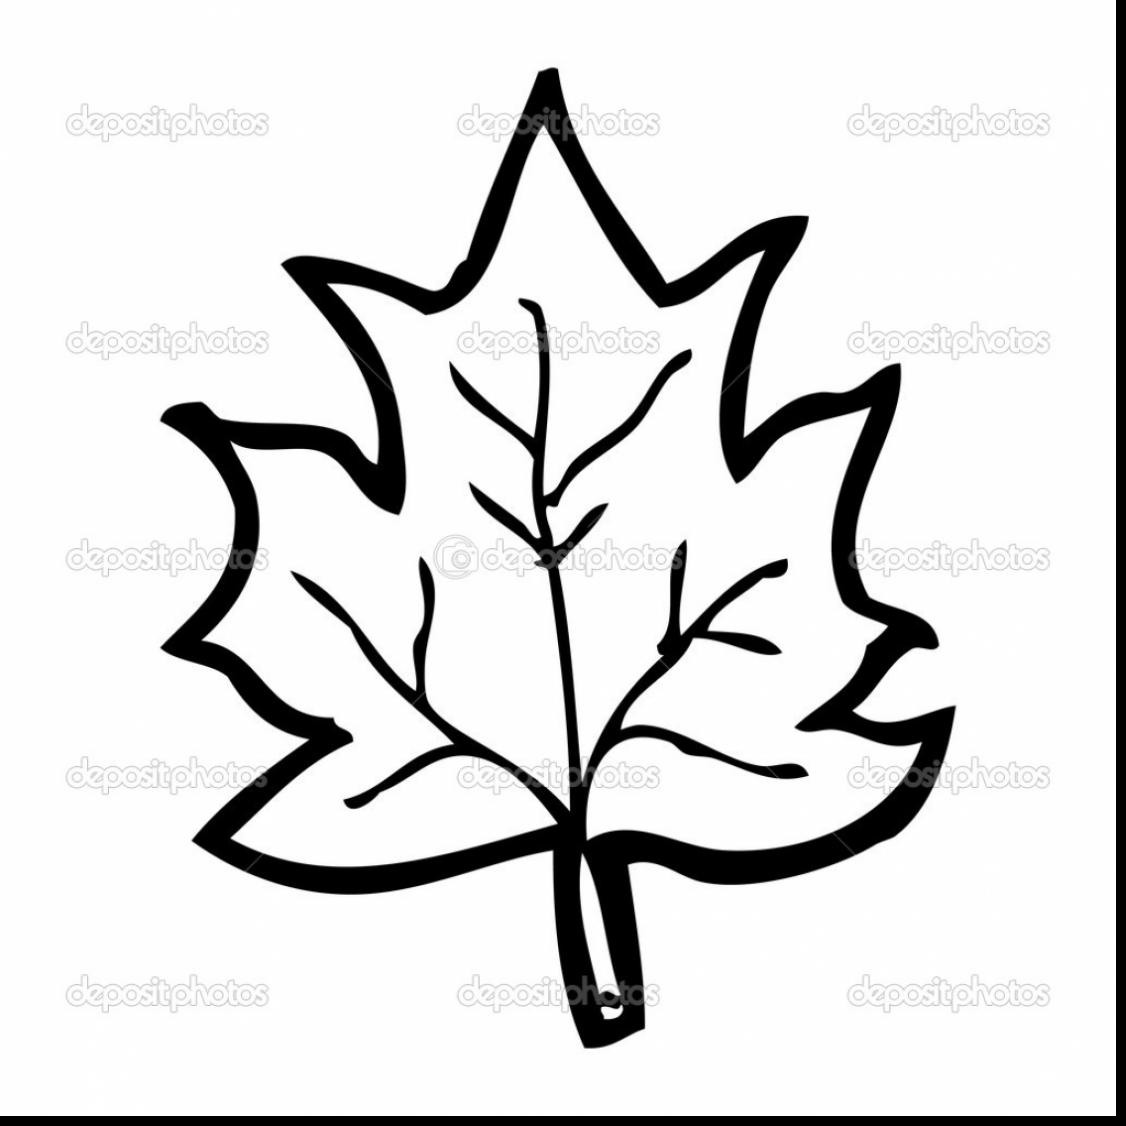 1126x1126 Terrific Rowan Tree Leaves Clip Art With Leaf Coloring Pages